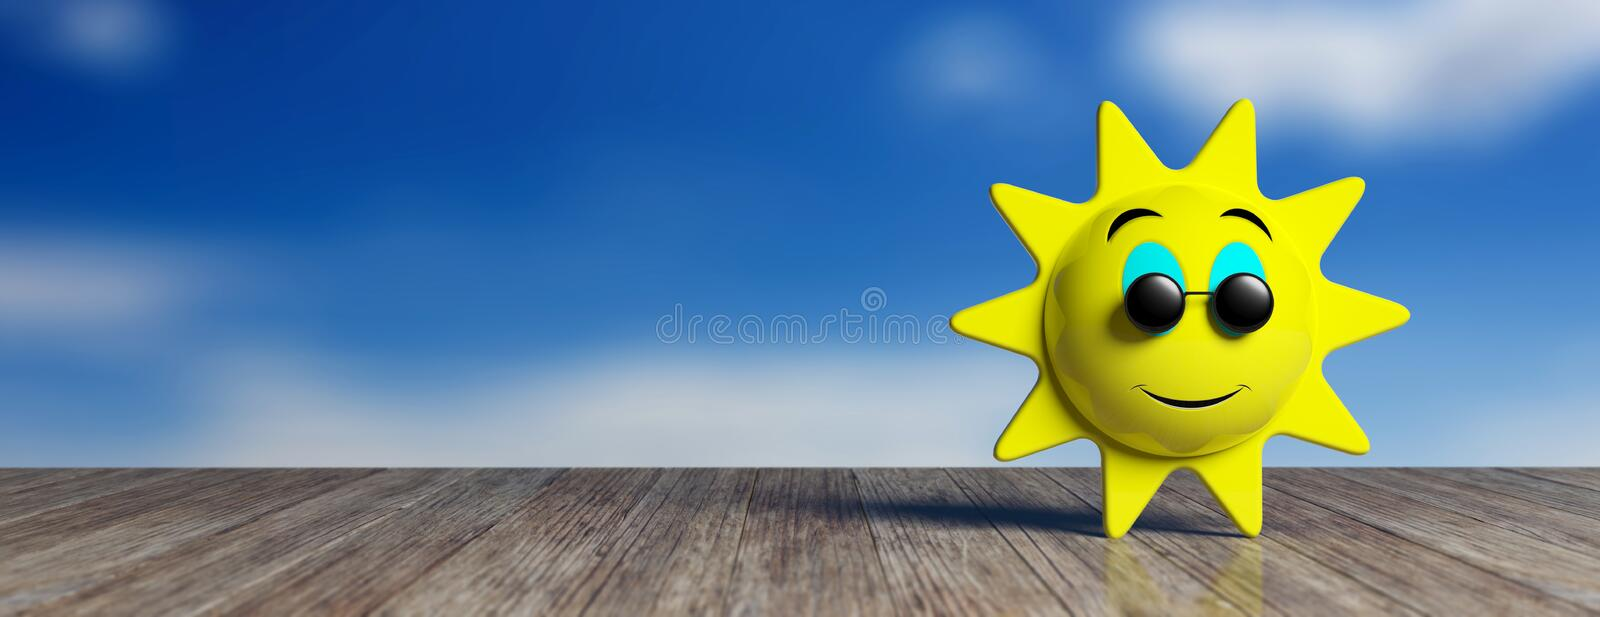 Emoji sun yellow with black round sunglasses smiling, on a wooden dock and sky background, banner. 3d illustration. Summer concept. Emoji sun yellow with black royalty free illustration